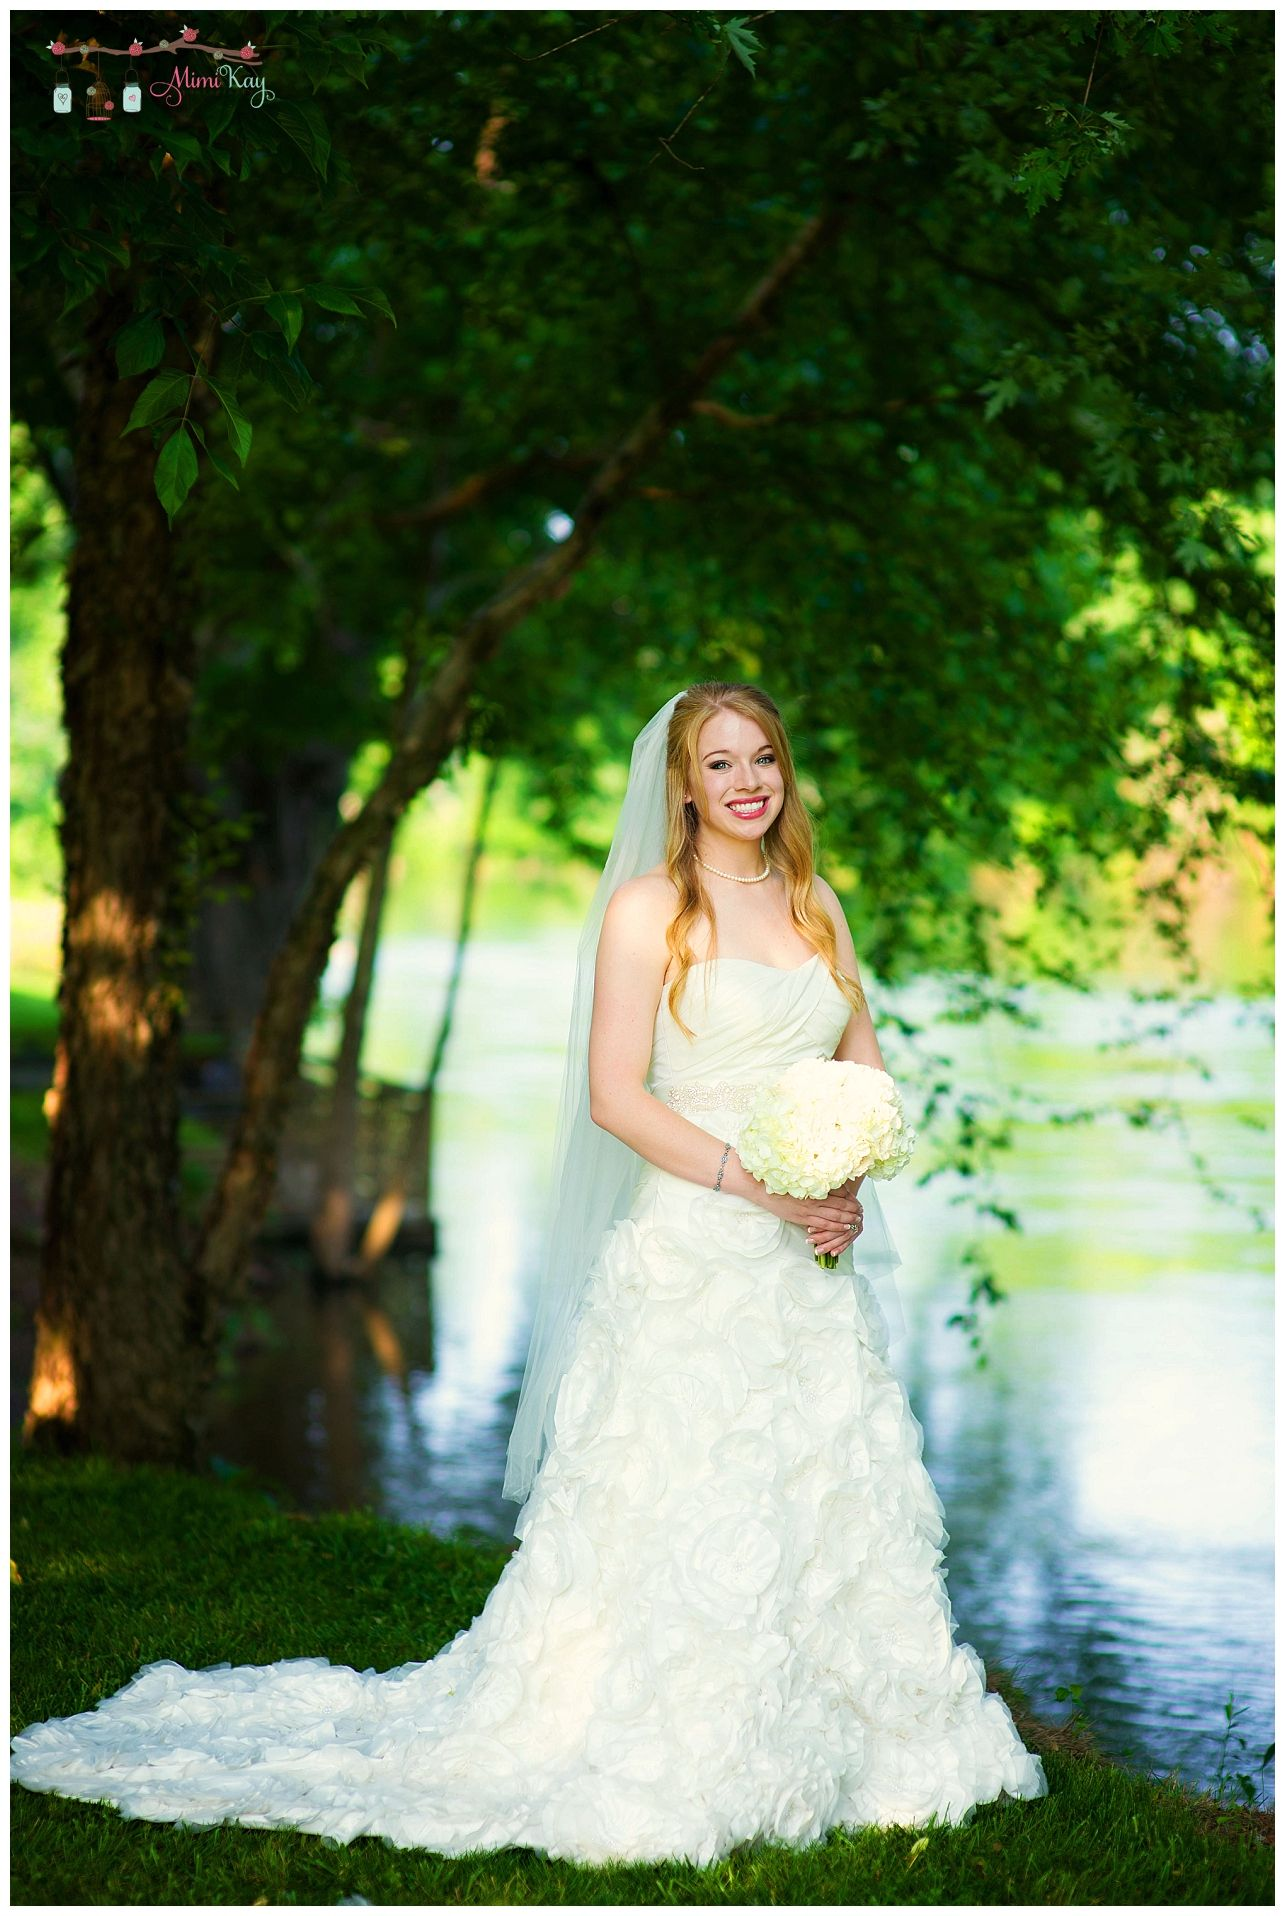 Hiwee River Wedding By Mimi Kay Photography Photographers In Cleveland Tn And Benton